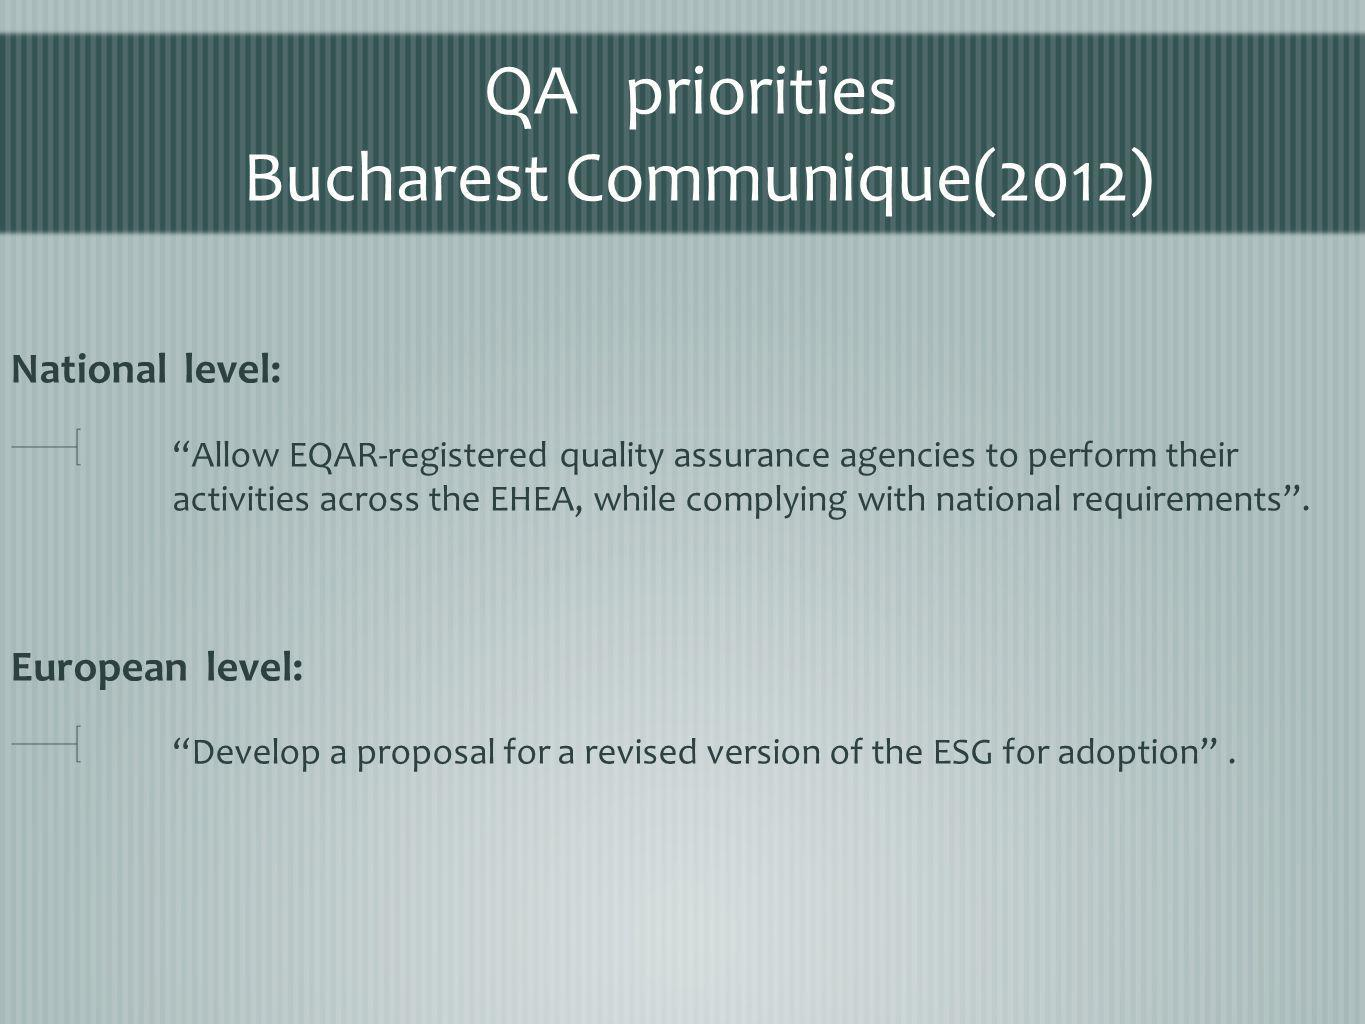 QA priorities Bucharest Communique(2012) National level: Allow EQAR-registered quality assurance agencies to perform their activities across the EHEA, while complying with national requirements.